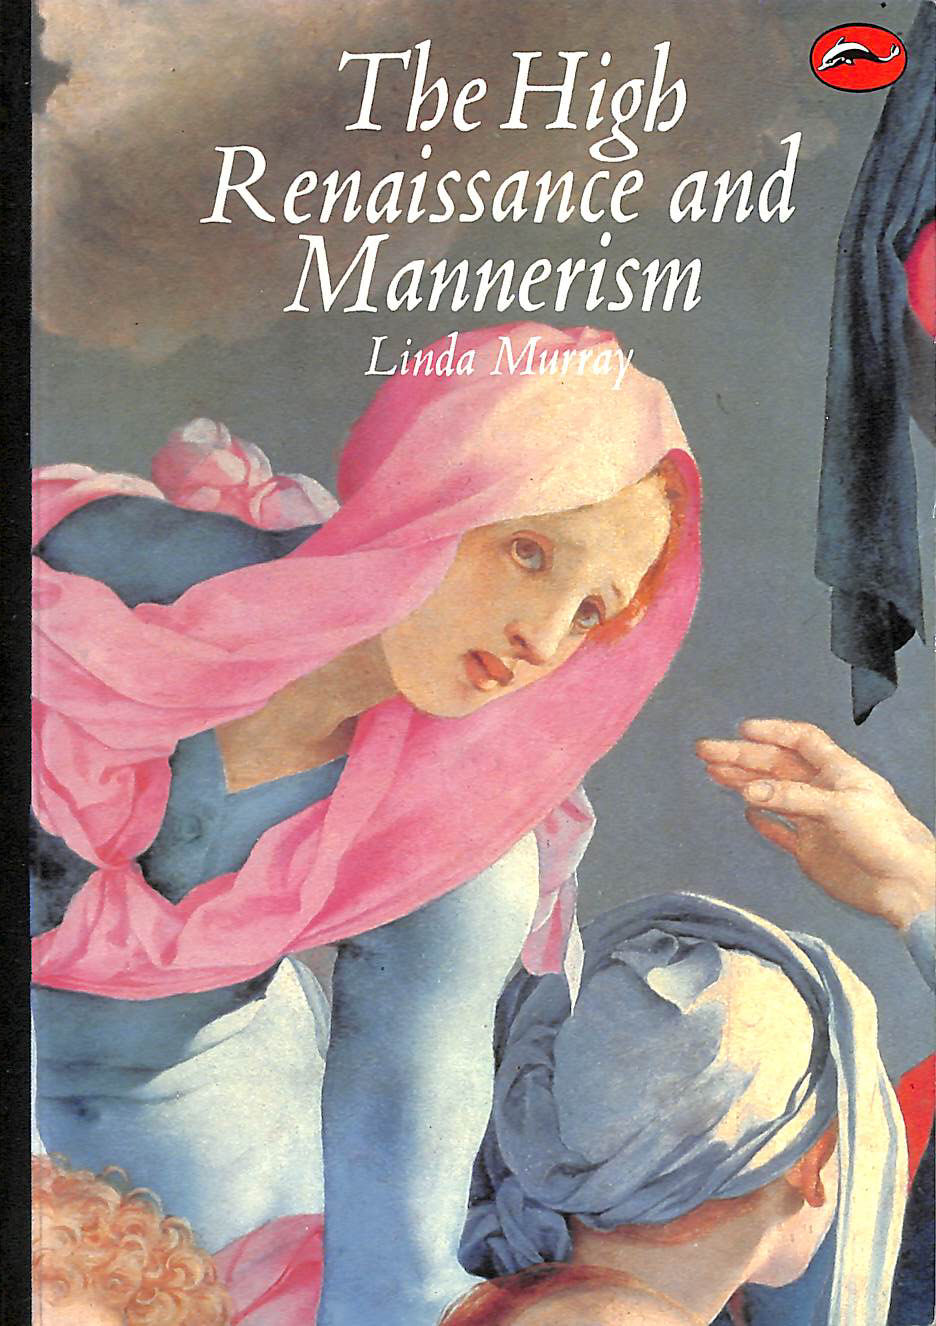 Image for The High Renaissance and Mannerism: Italy, the North and Spain 1500-1600 (World of Art)